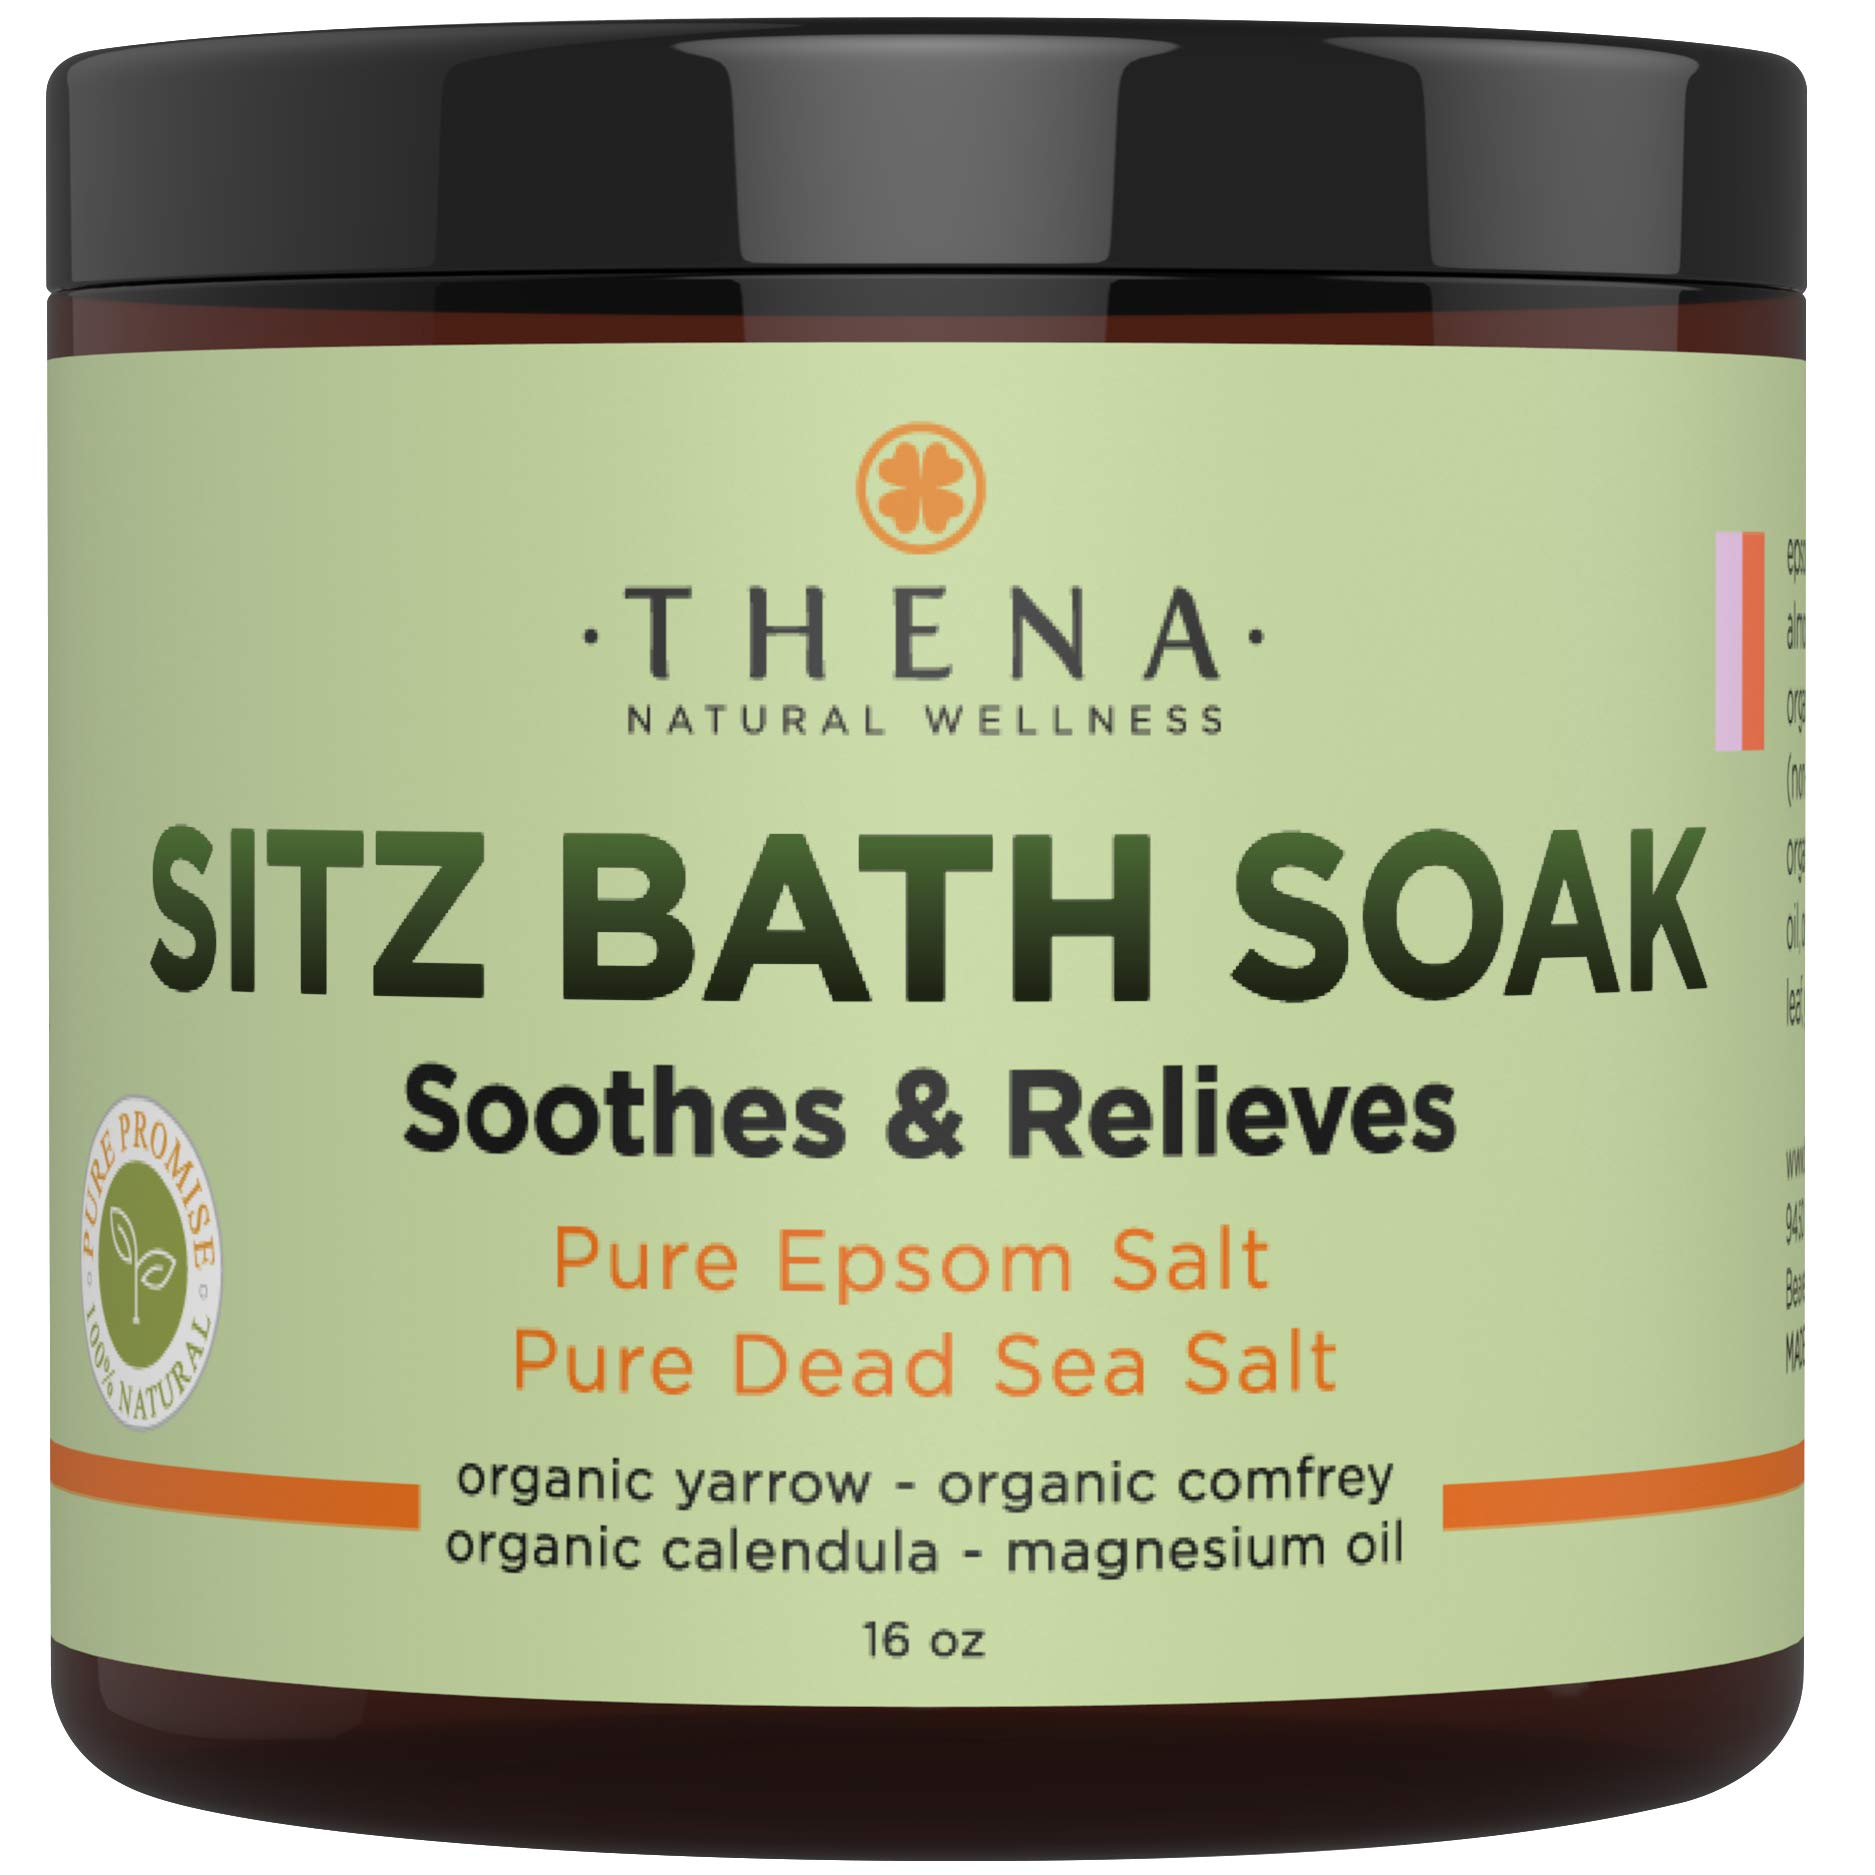 Best Organic Sitz Bath Soak For Postpartum Care Recovery & Natural Hemorrhoid Treatment, Soothes Relieves Pain Reduces Discomfort, 100% Pure Epsom & Dead Sea Salts Witch Hazel Lavender Essential Oil by THENA Natural Wellness